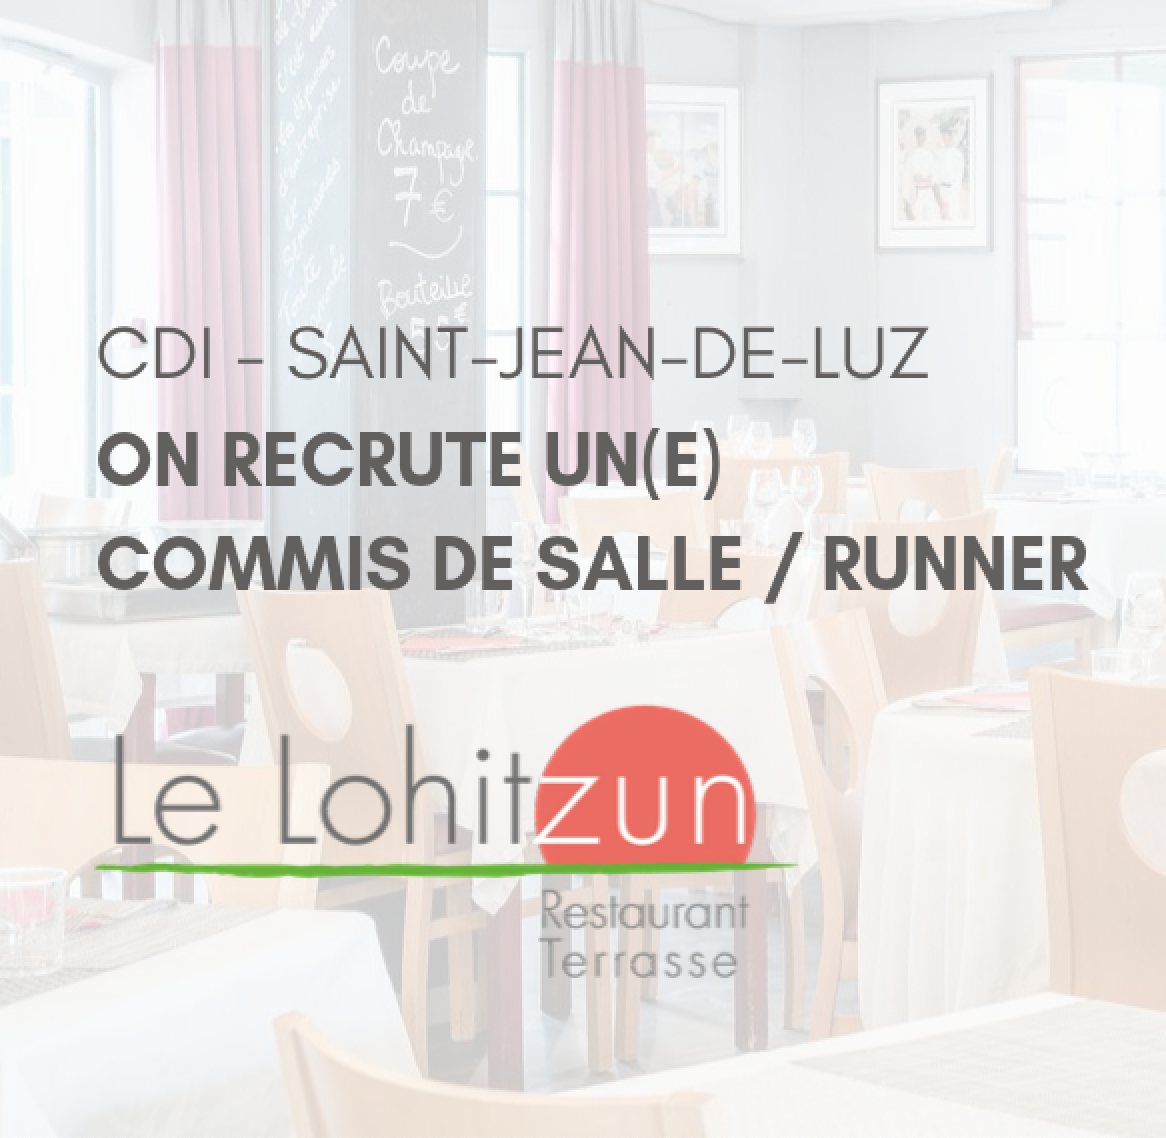 On recrute un(e) commis de salle / runner (CDI Saint-Jean-de-Luz)